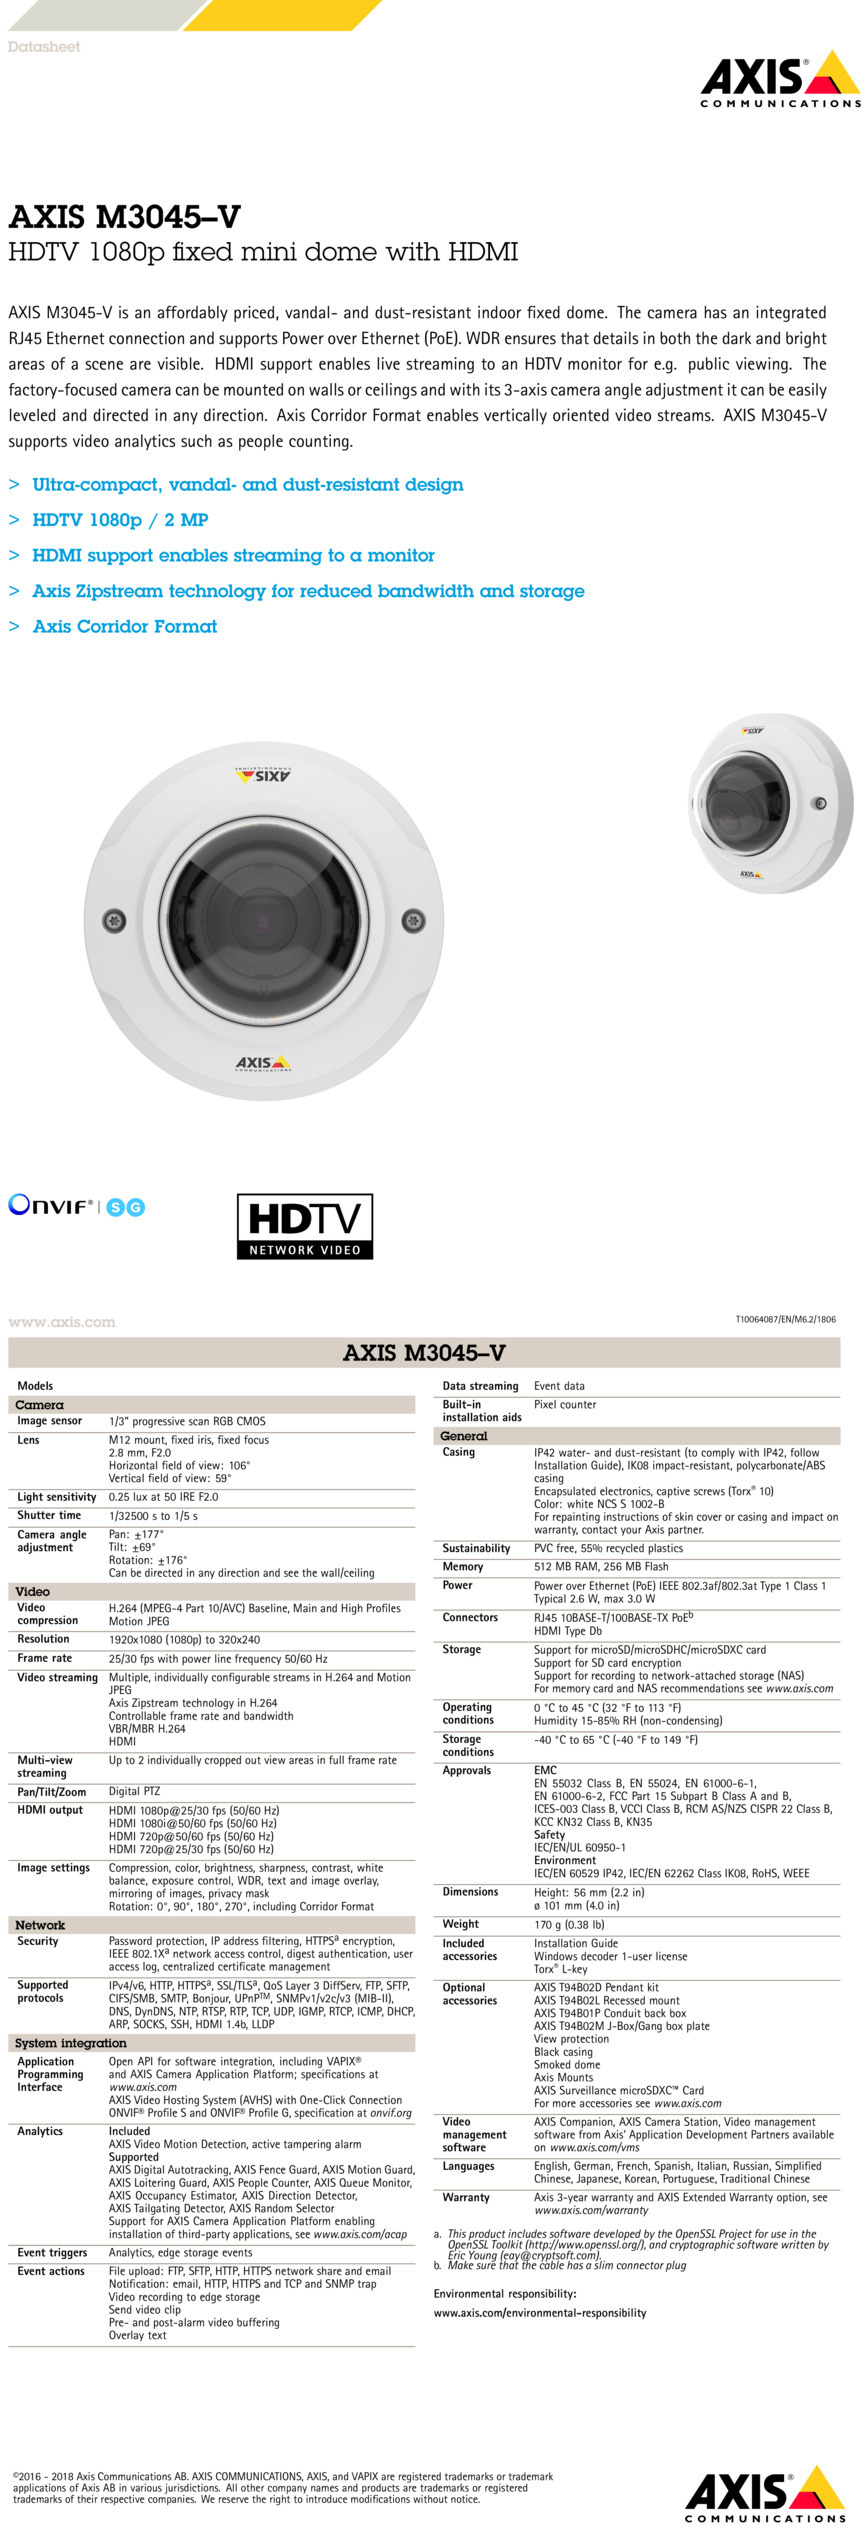 AXIS M3045-V 2MP Dome Camera With HDMI and 2 8mm Lens | DigitalSi